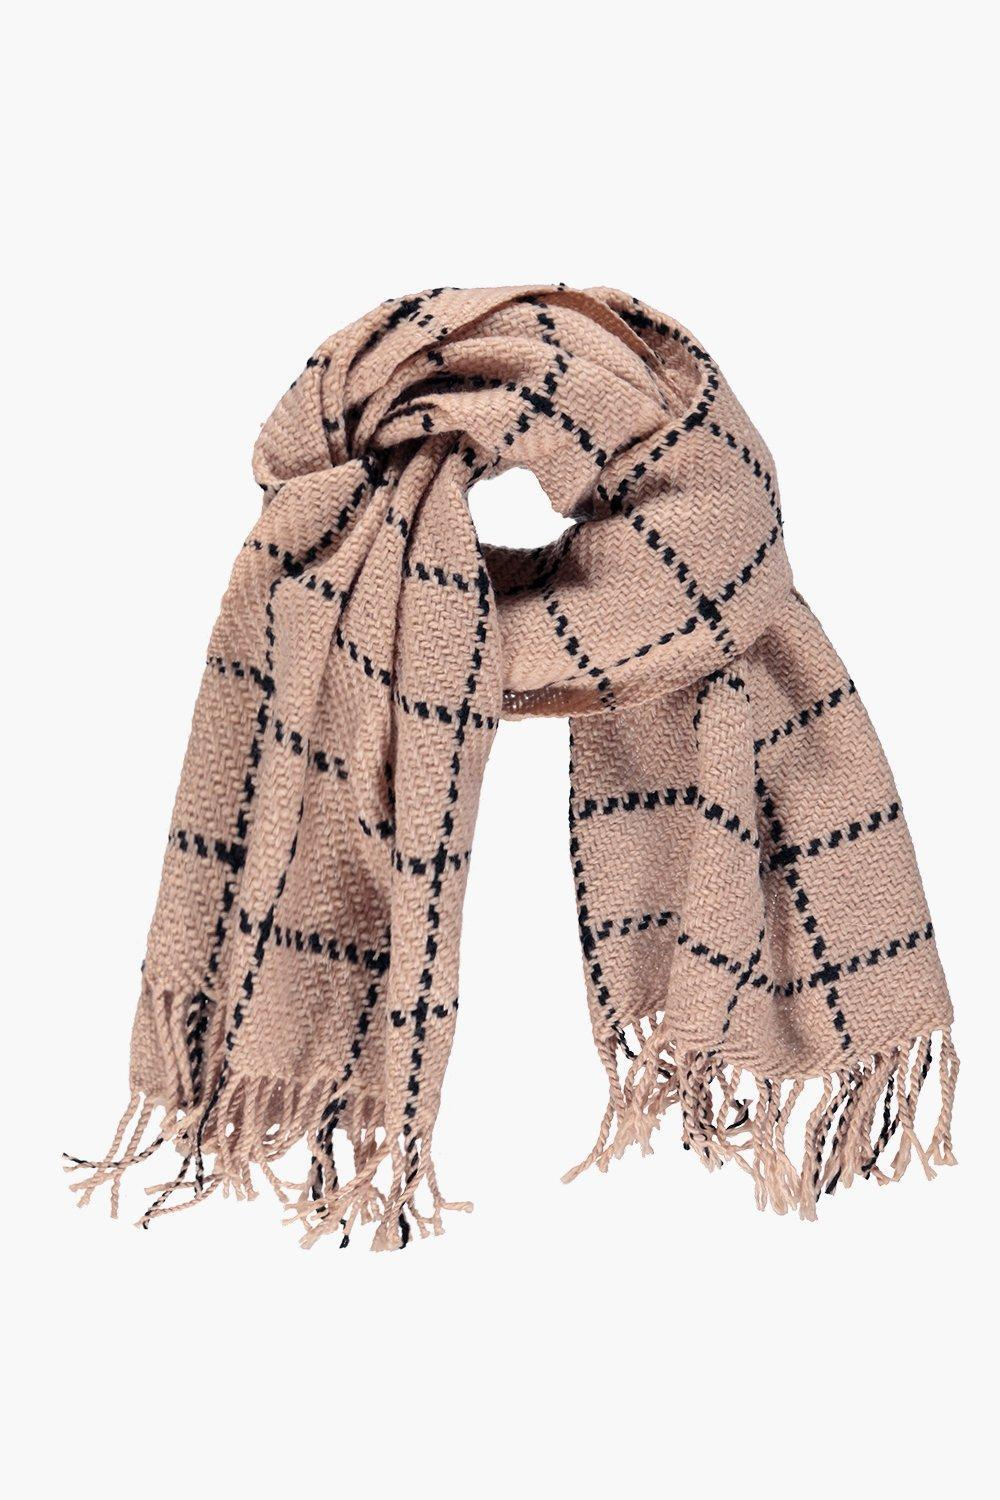 Checked Large Wrap Scarf Stone - secondary colour: navy; predominant colour: nude; occasions: casual, creative work; type of pattern: standard; style: regular; size: standard; material: knits; embellishment: fringing; pattern: checked/gingham; season: a/w 2016; wardrobe: highlight